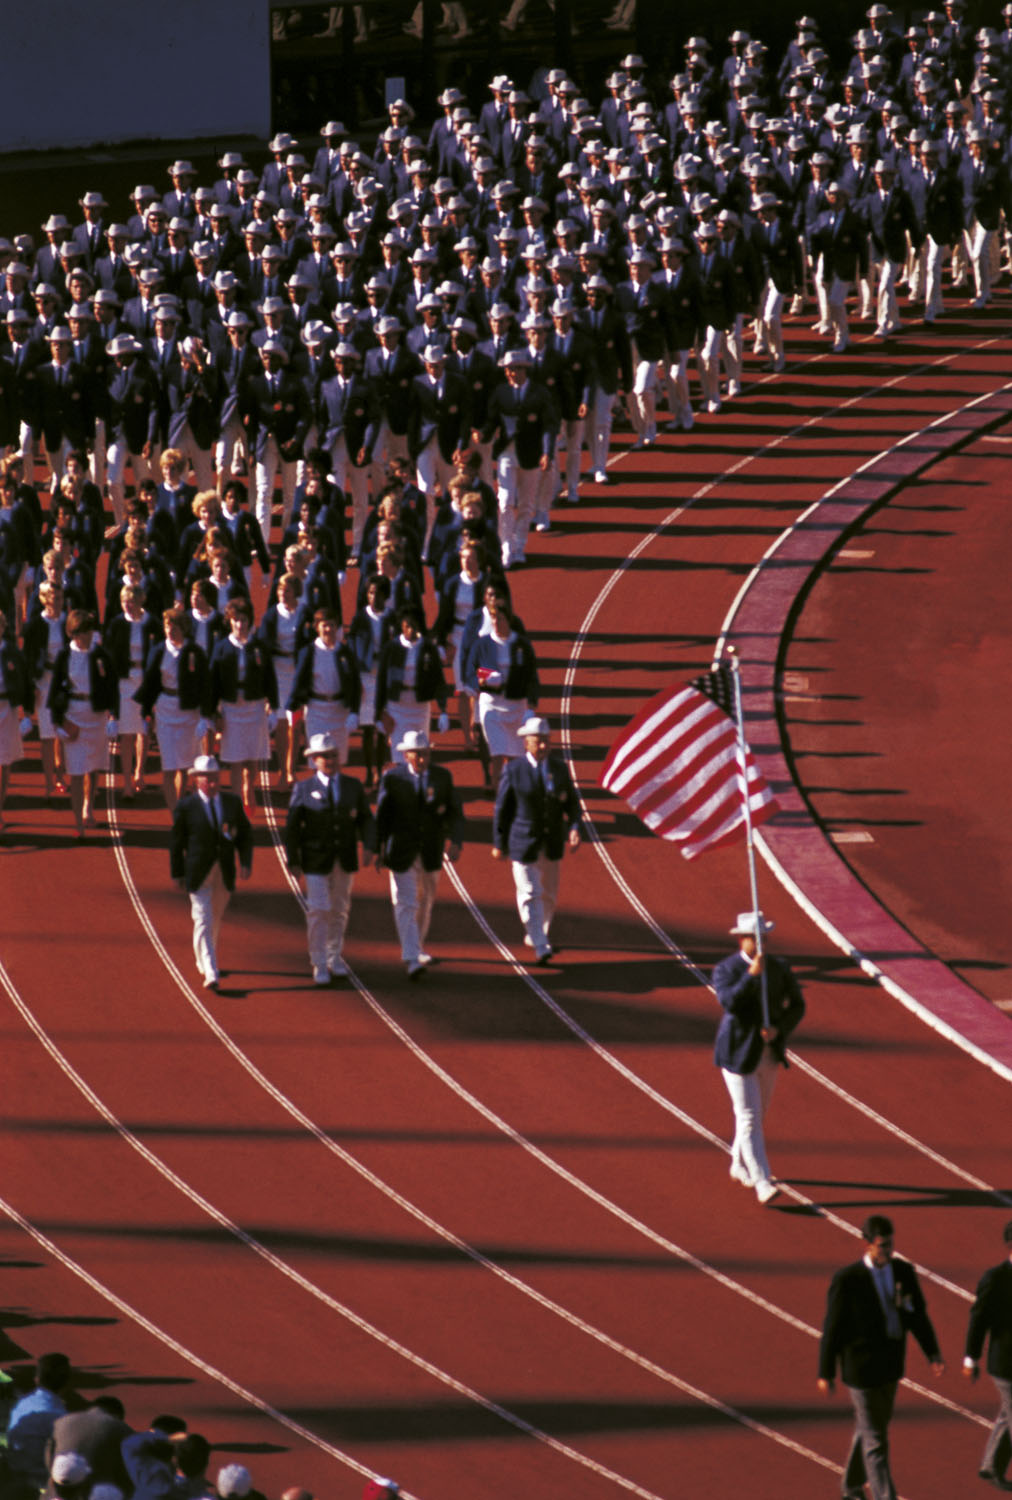 Track and Field athlete William Parry O'Brien, leads the U.S. athletes during the opening ceremony of the Summer Olympics in Tokyo on Oct. 10, 1964.